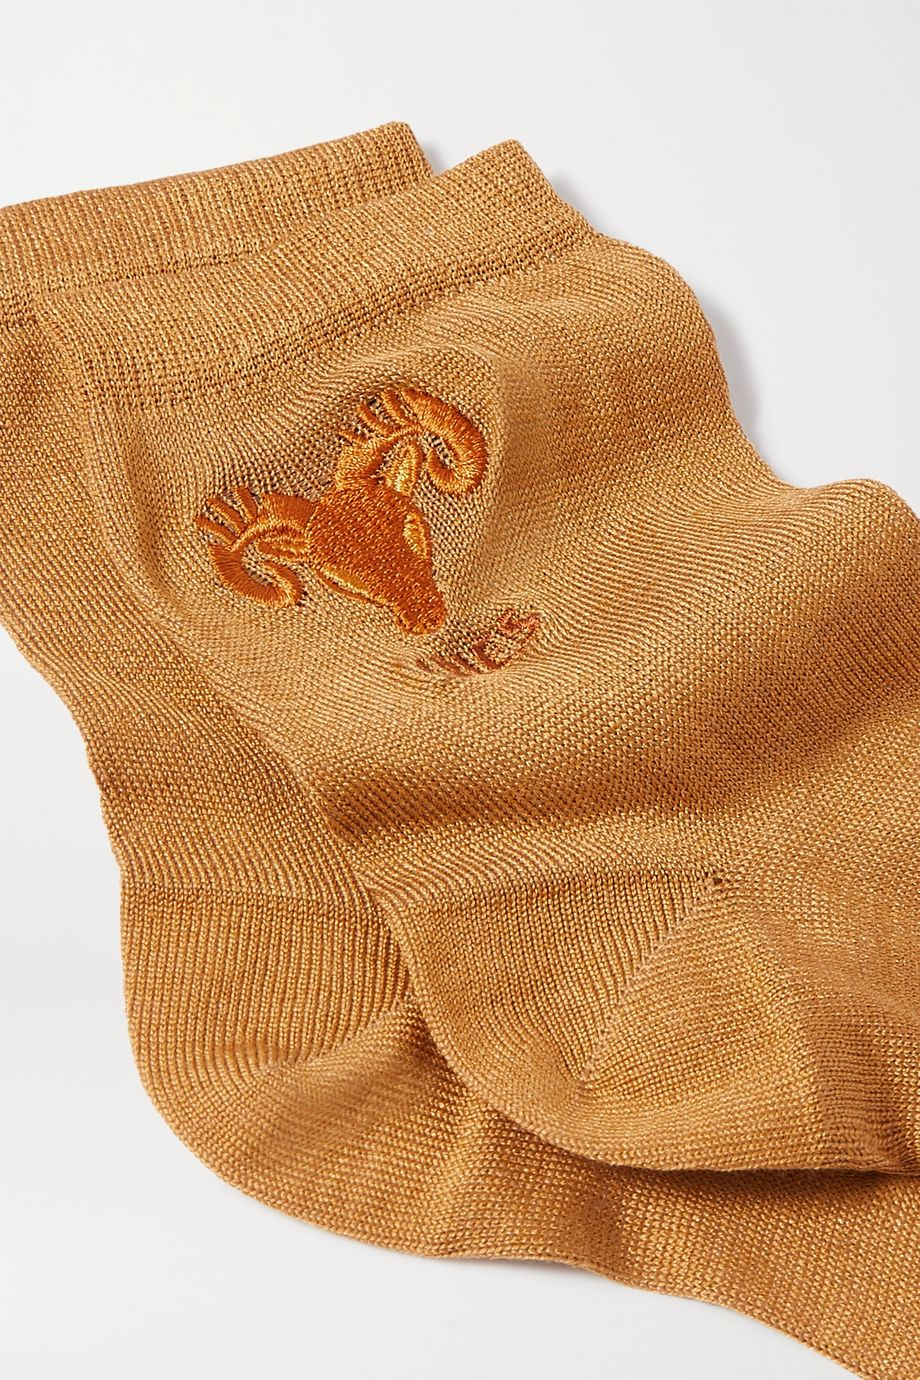 Maria La Rosa Aries embroidered silk-blend socks